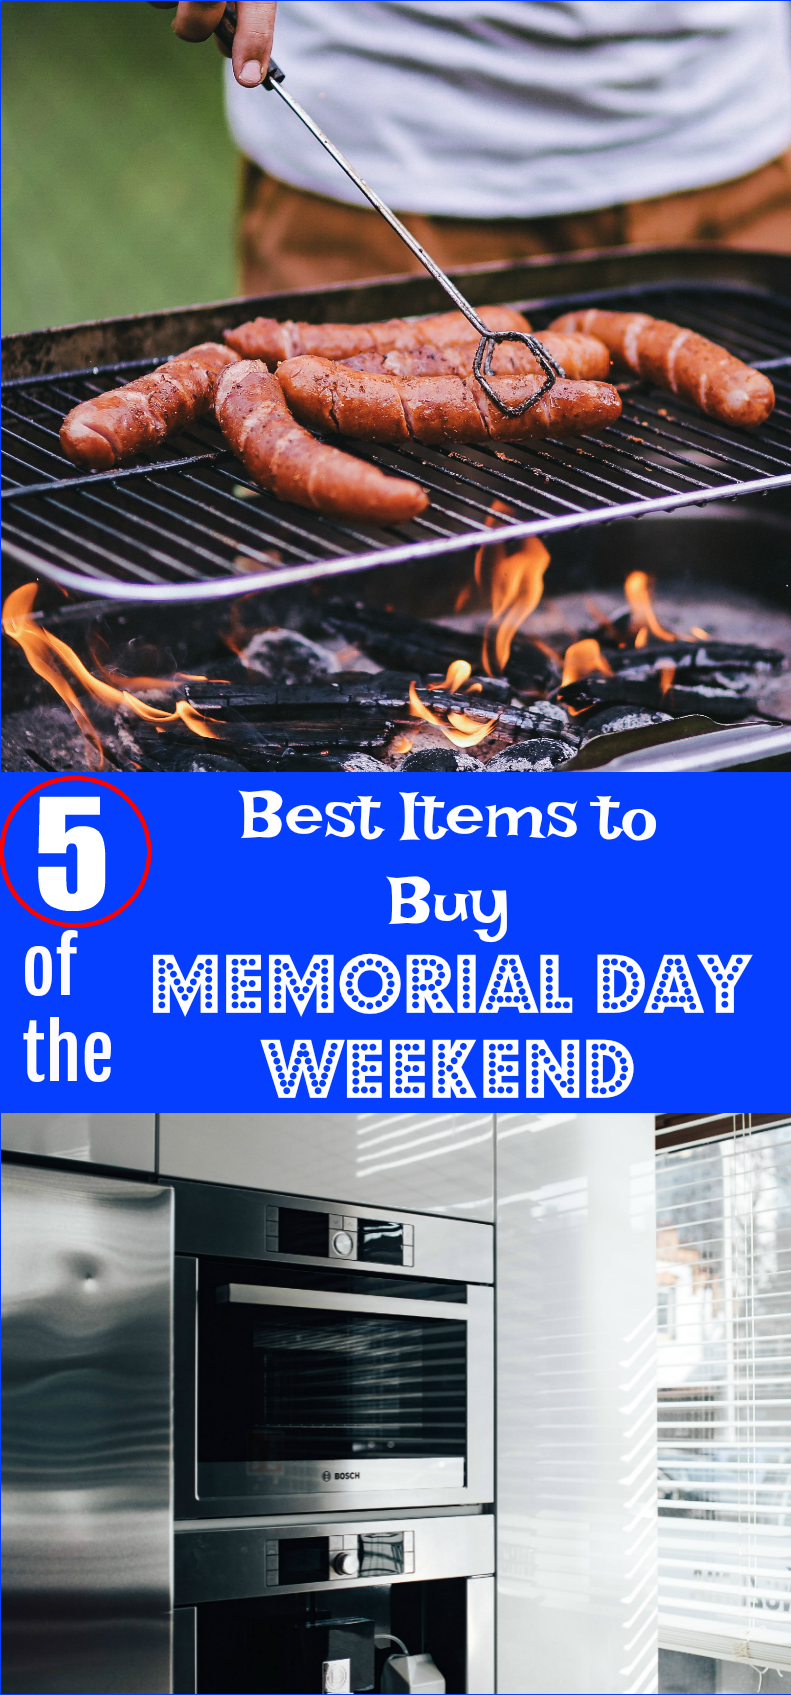 5 of the Best Items to Buy Memorial Day Weekend